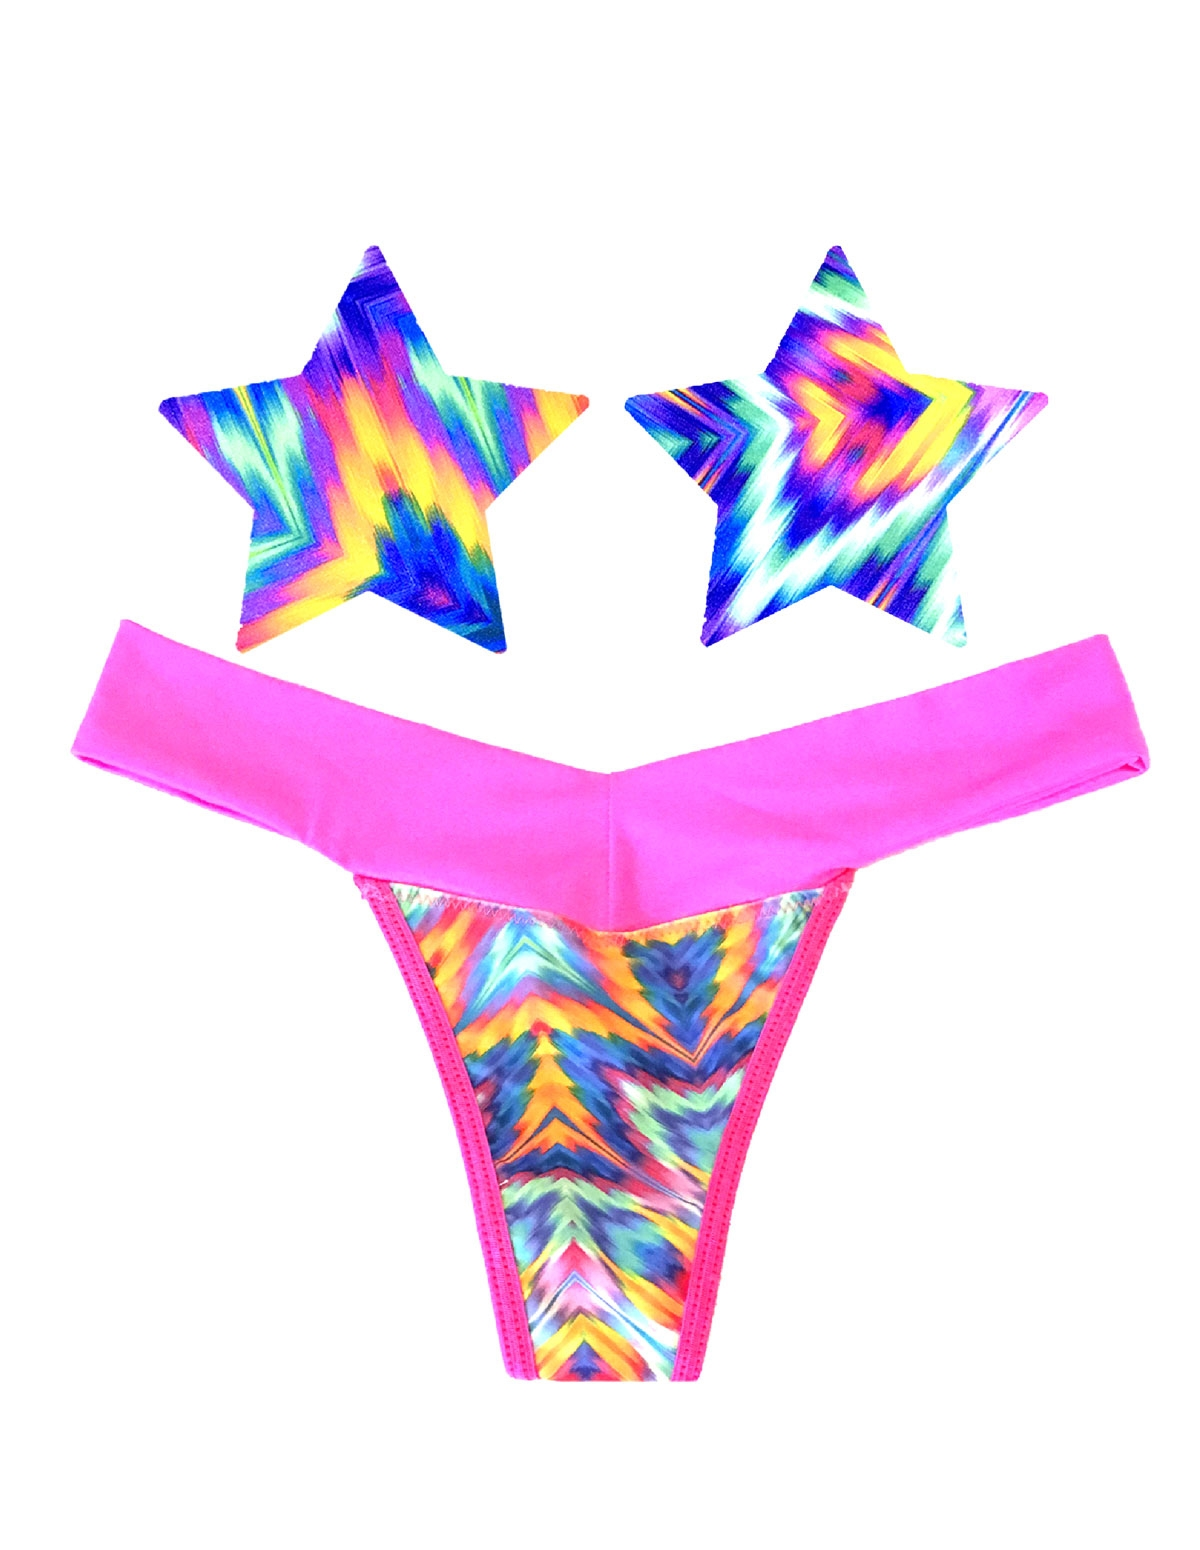 Naughty Knix Aztec Rave Thong & Pasties